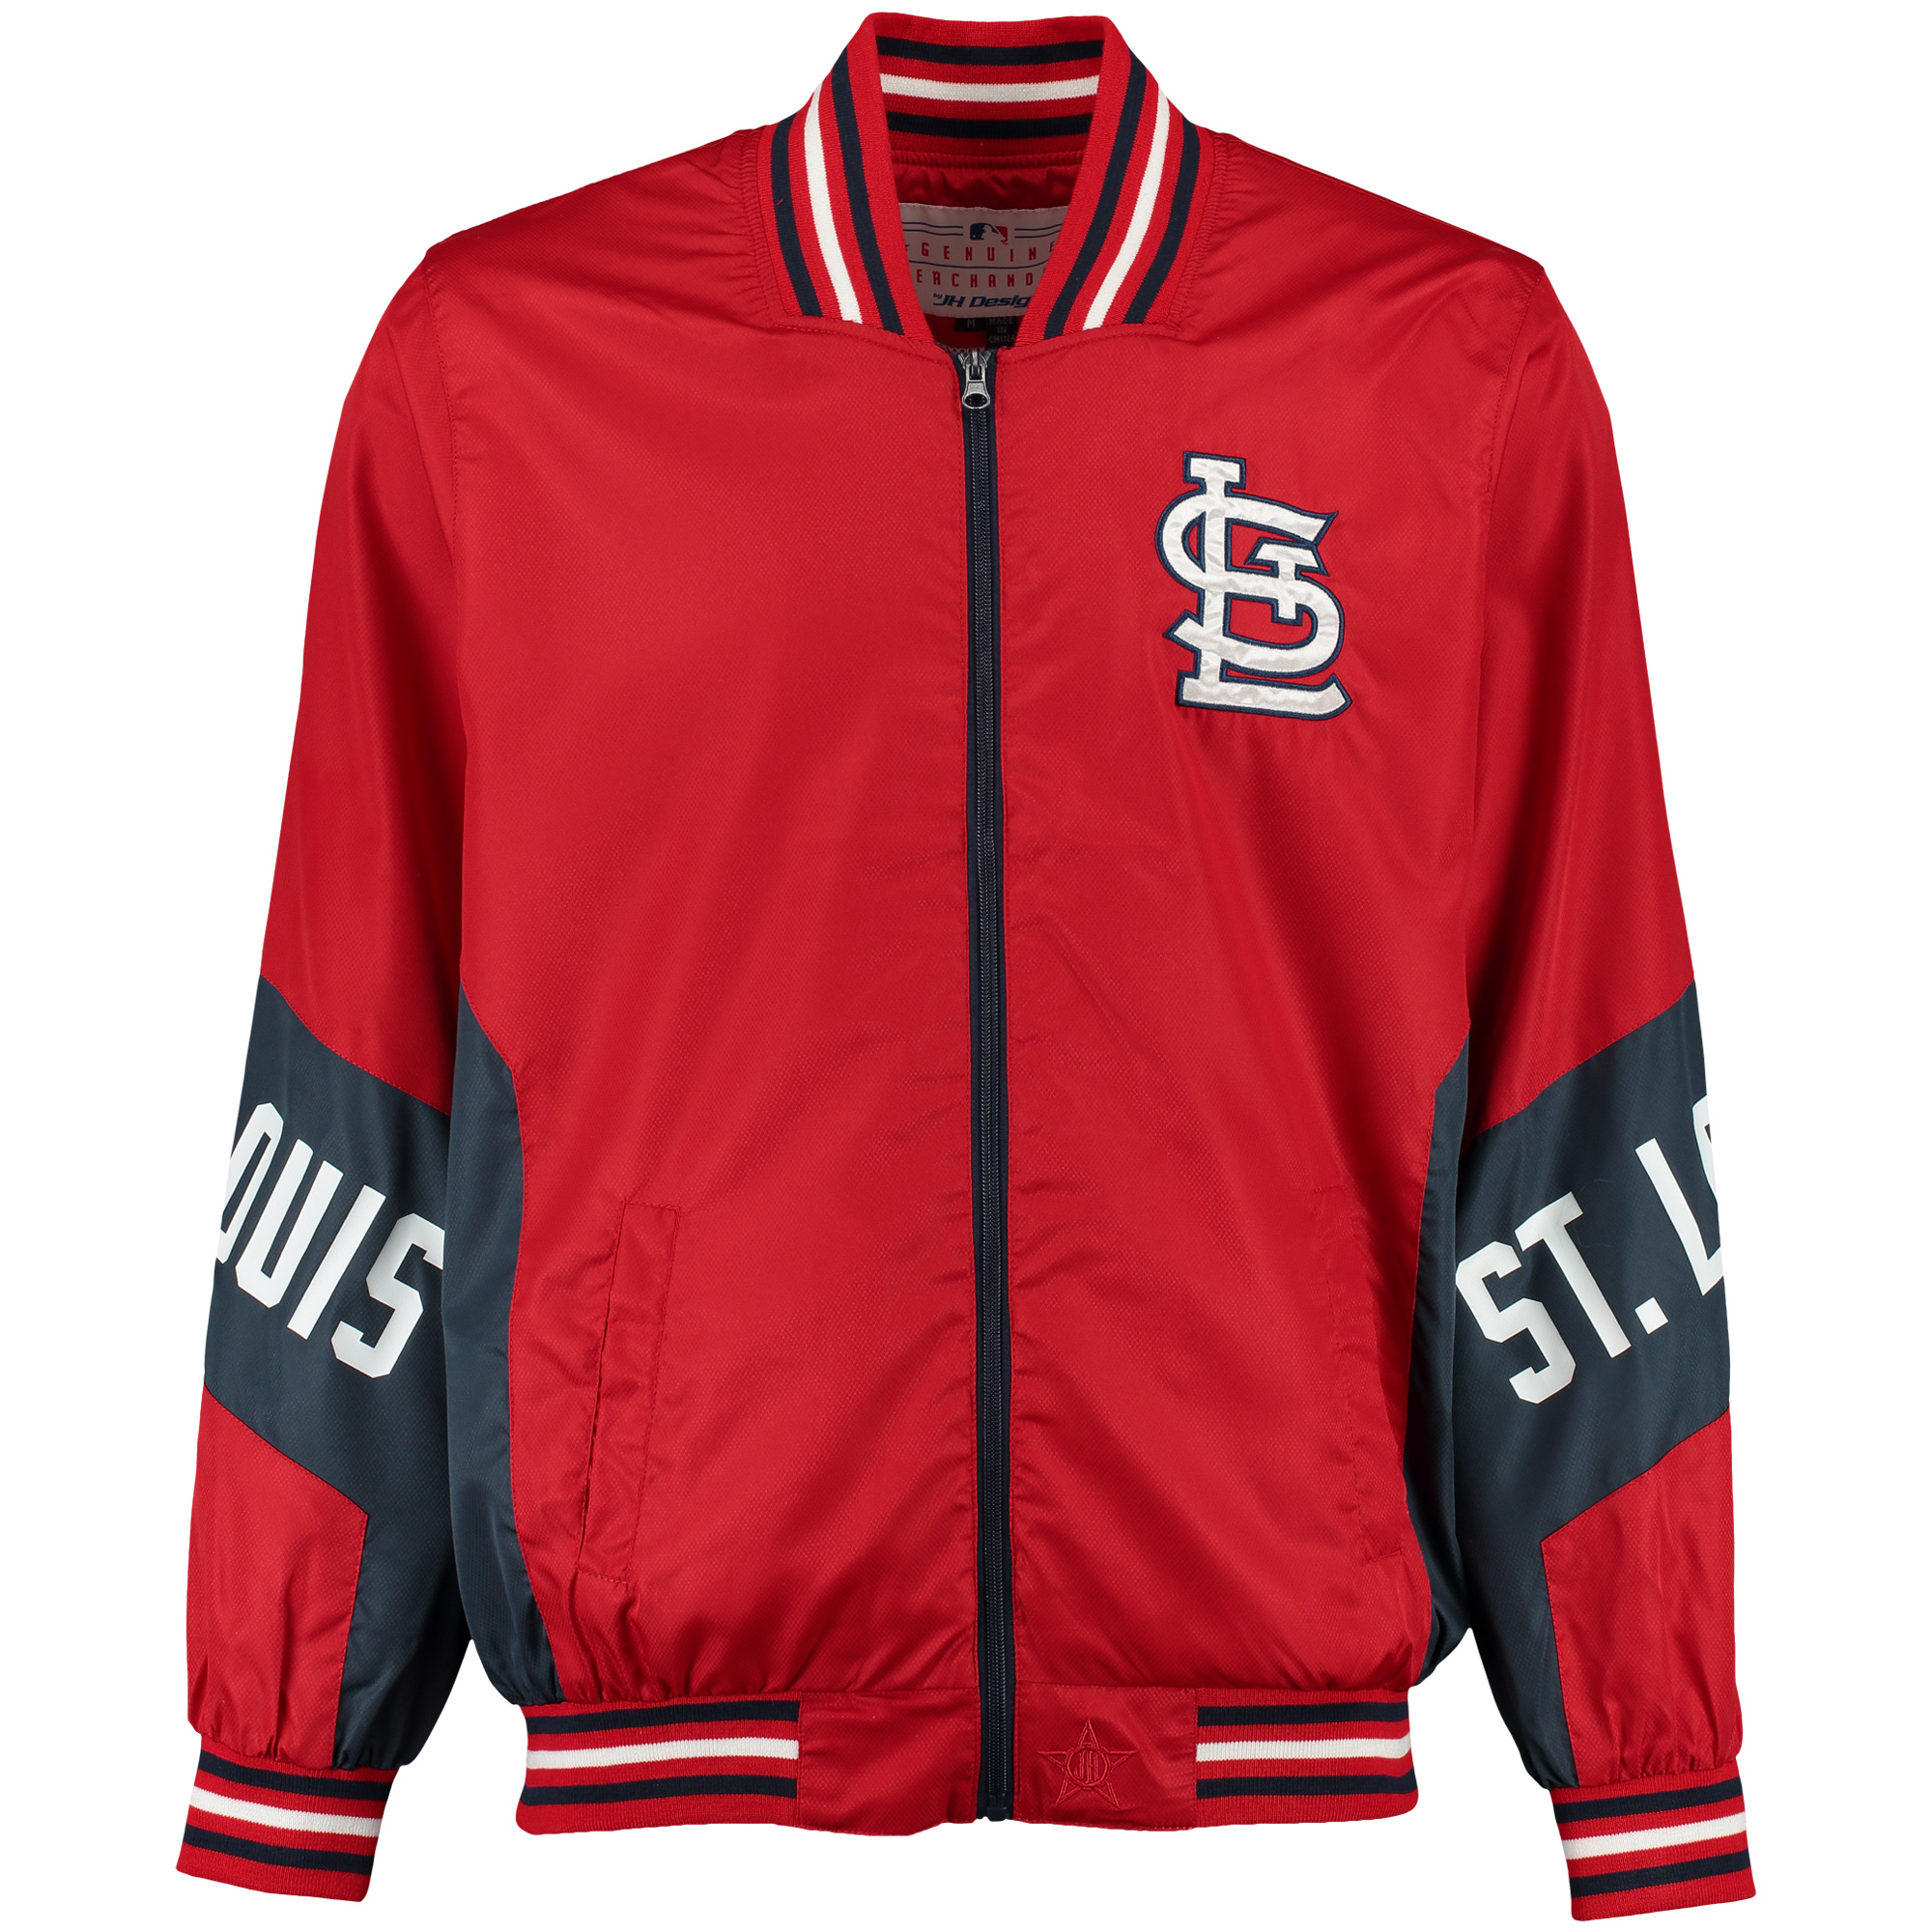 St. Louis Cardinals JH Design Nylon Colorblocked Mesh Lined Full-Zip Jacket - Red